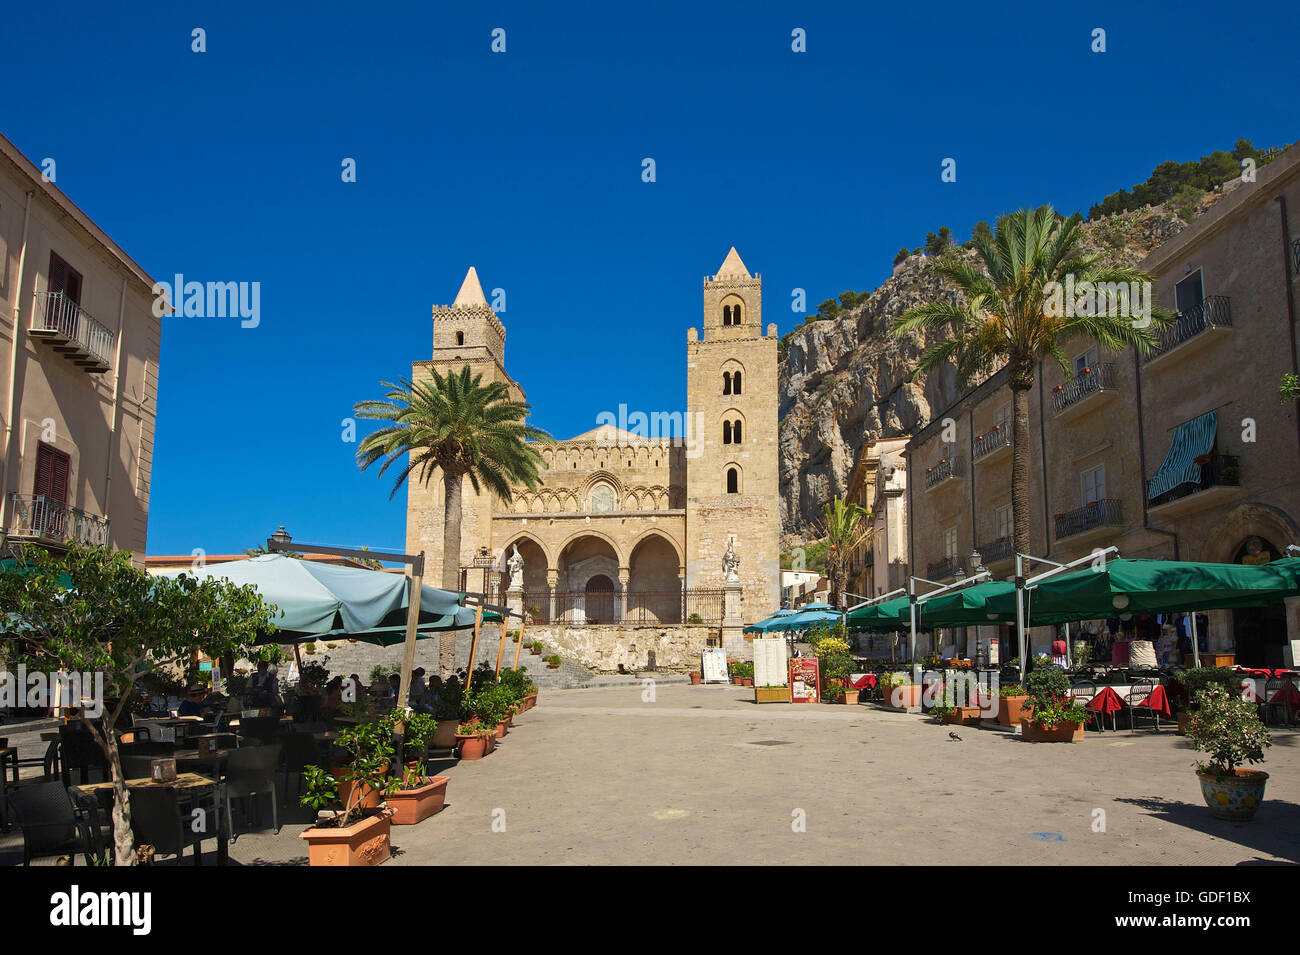 Cathedral San Salvatore, Piazza Duomo in Cefalu, Sicily, Italy - Stock Image